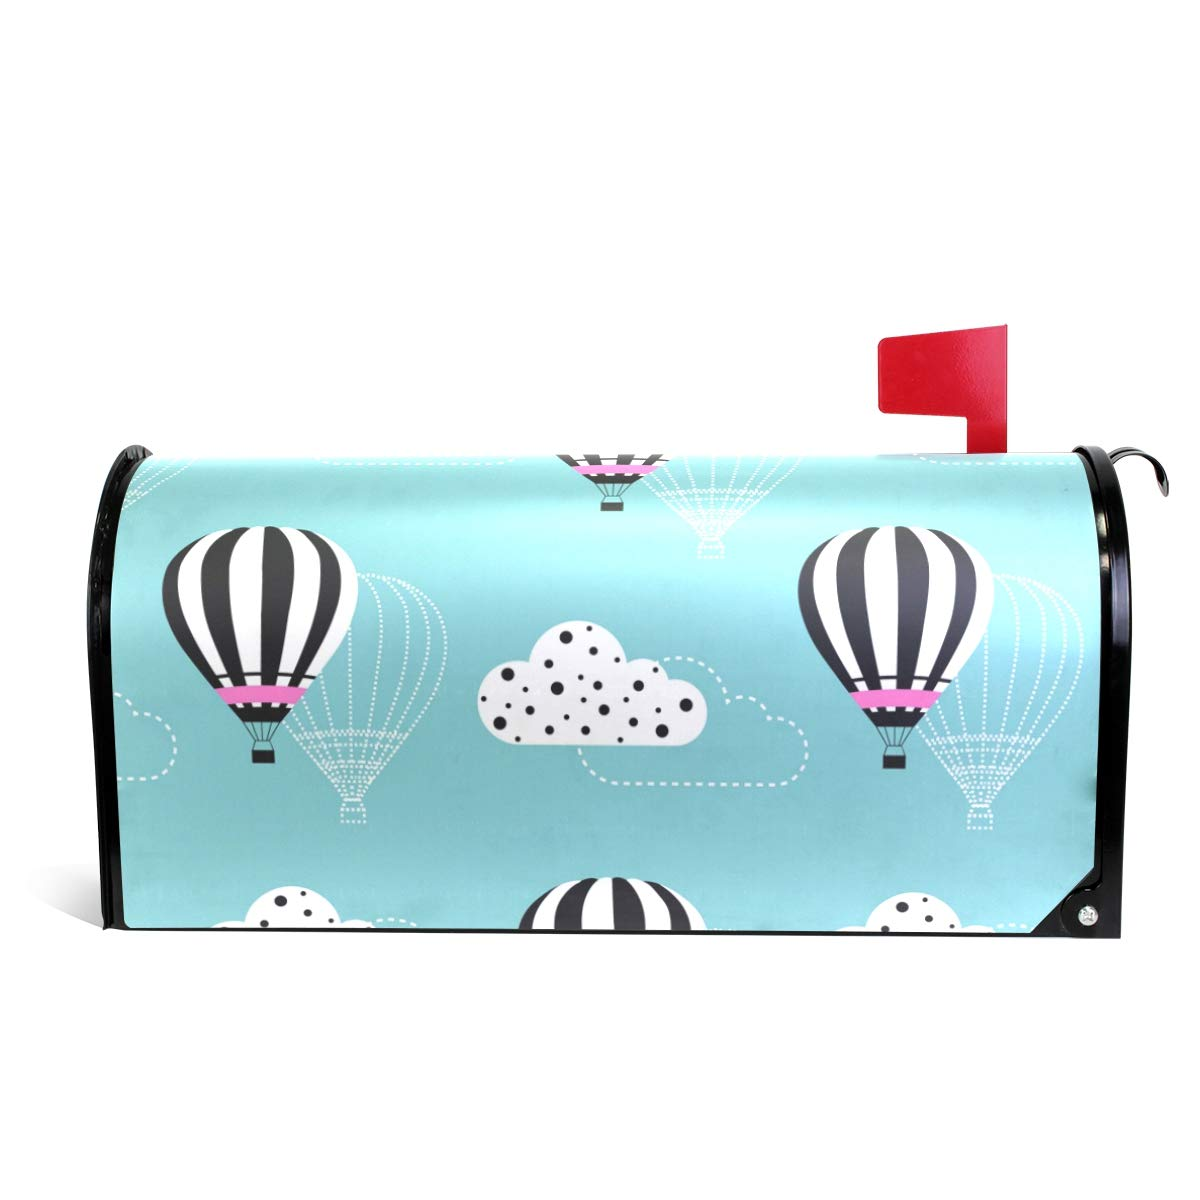 Hot Air Balloon Magnetic Mailbox Cover Oversized-25.5'' x20.8